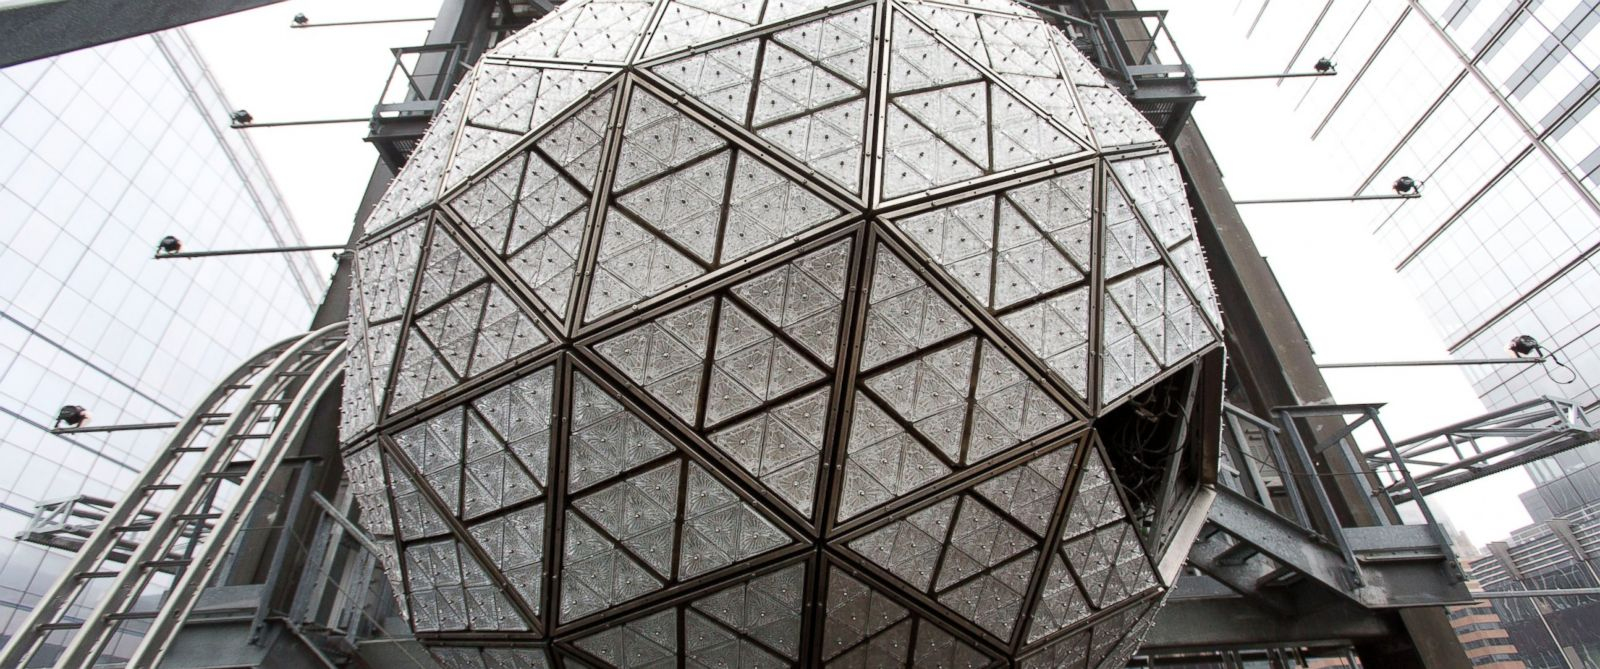 Go behind the scenes at the waterford times square ball - Waterford crystal swimming pool times ...